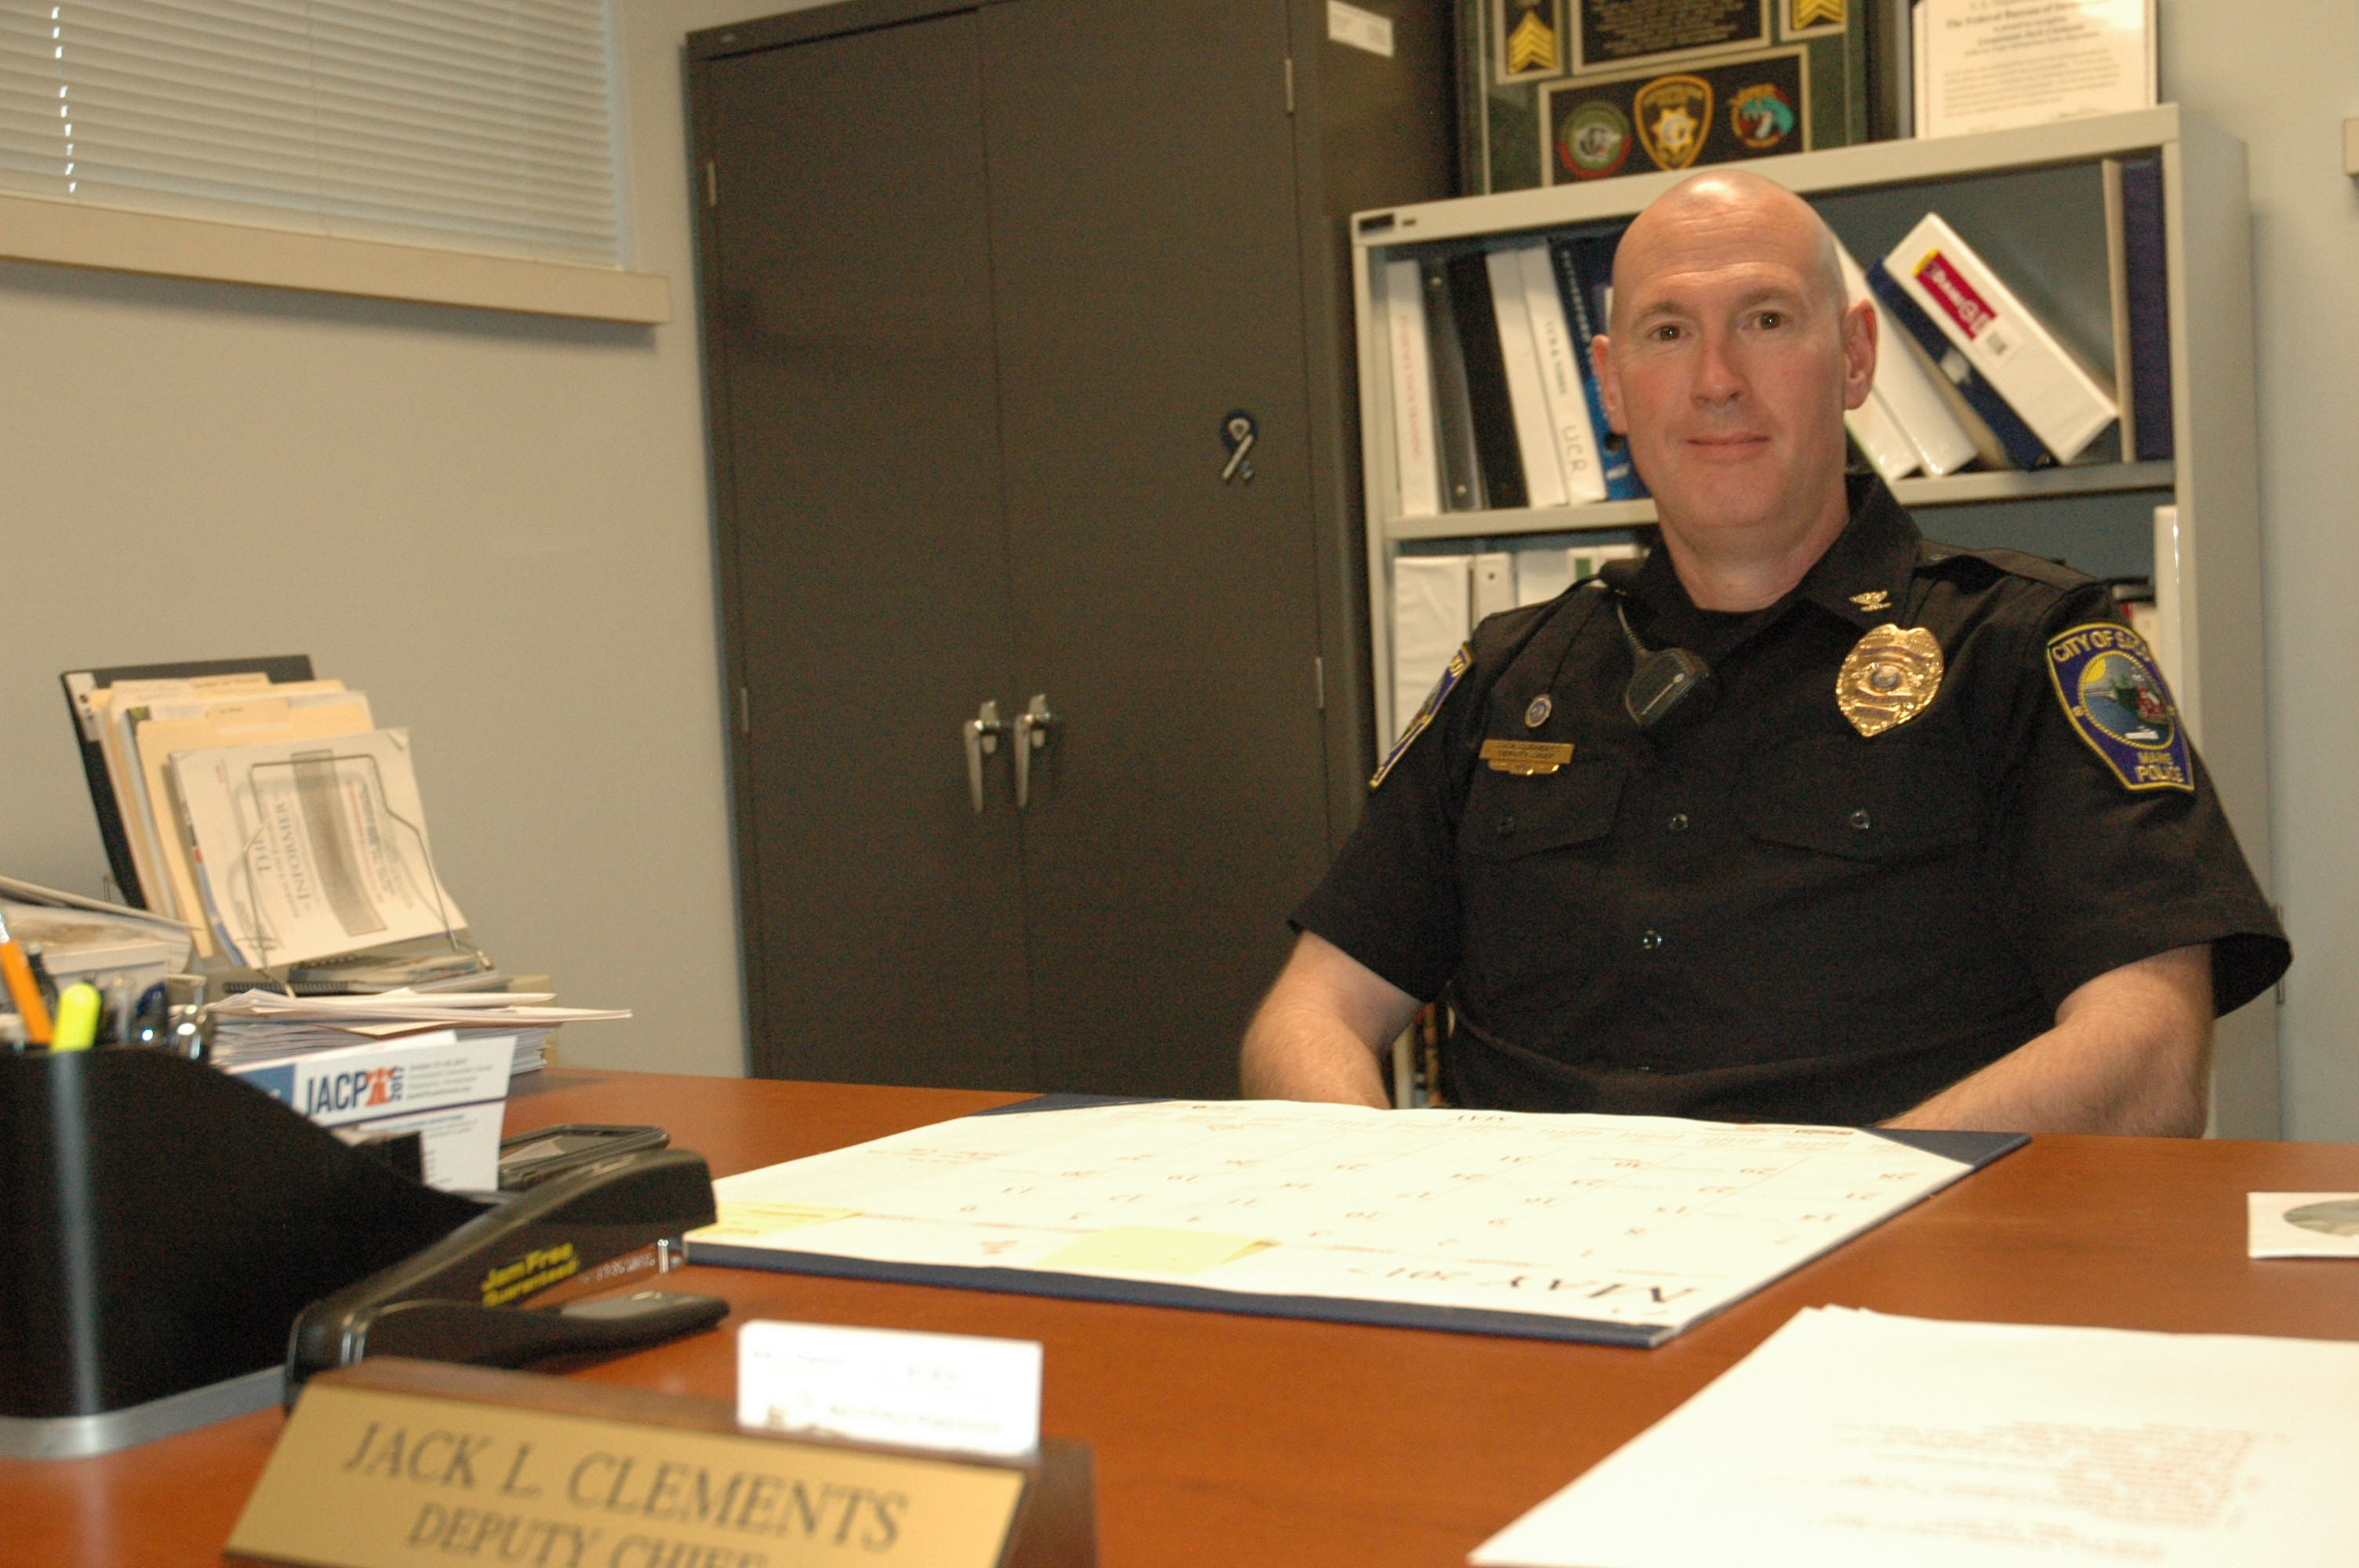 Saco Deputy Police Chief Jack Clements sits at his desk on Monday. LIZ GOTTHELF/Journal Tribune